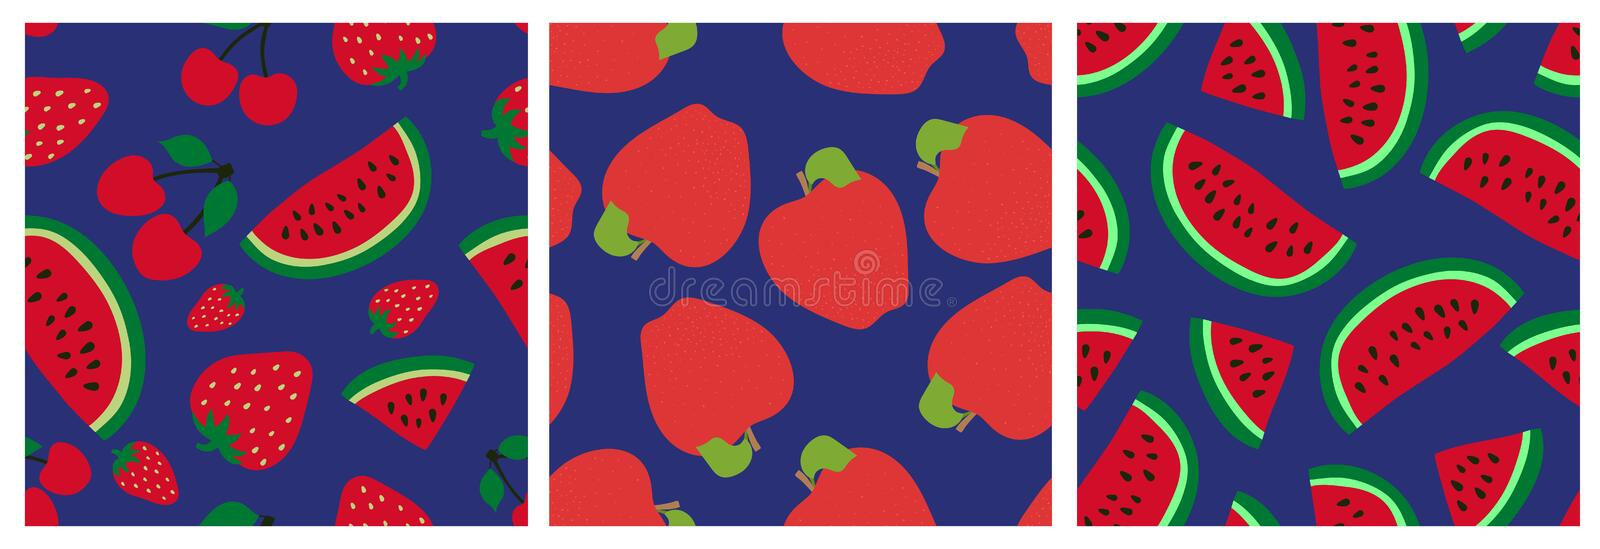 Watermelon, cherry, strawberry and apple. Fruit seamless pattern set. Fashion design. Food print for clothes, linens or curtain. vector illustration